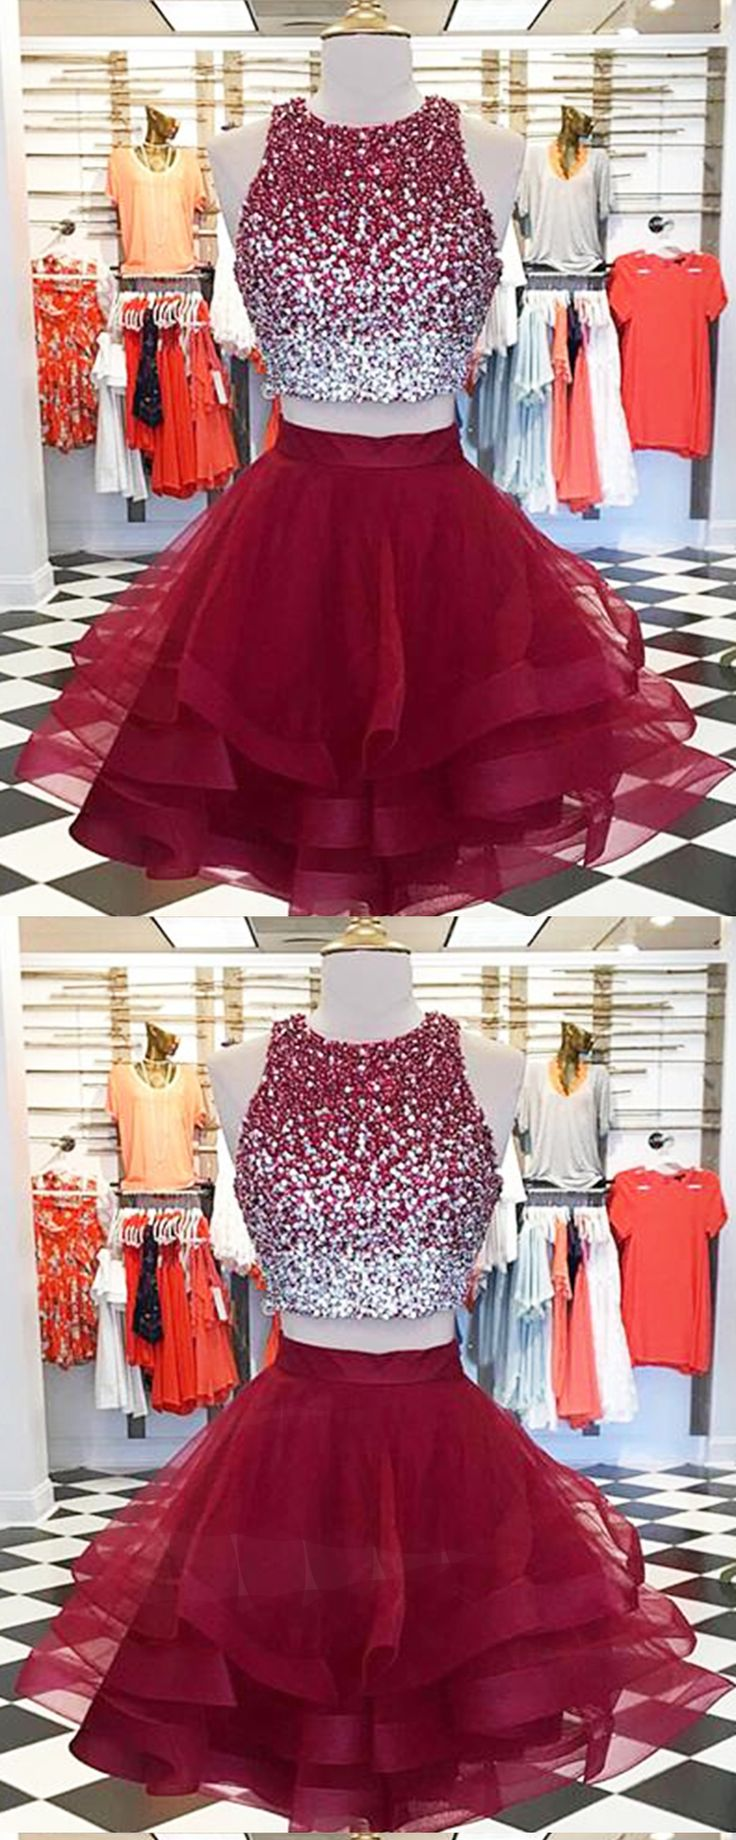 Burgundy tulle two pieces short homecoming dress with sequins